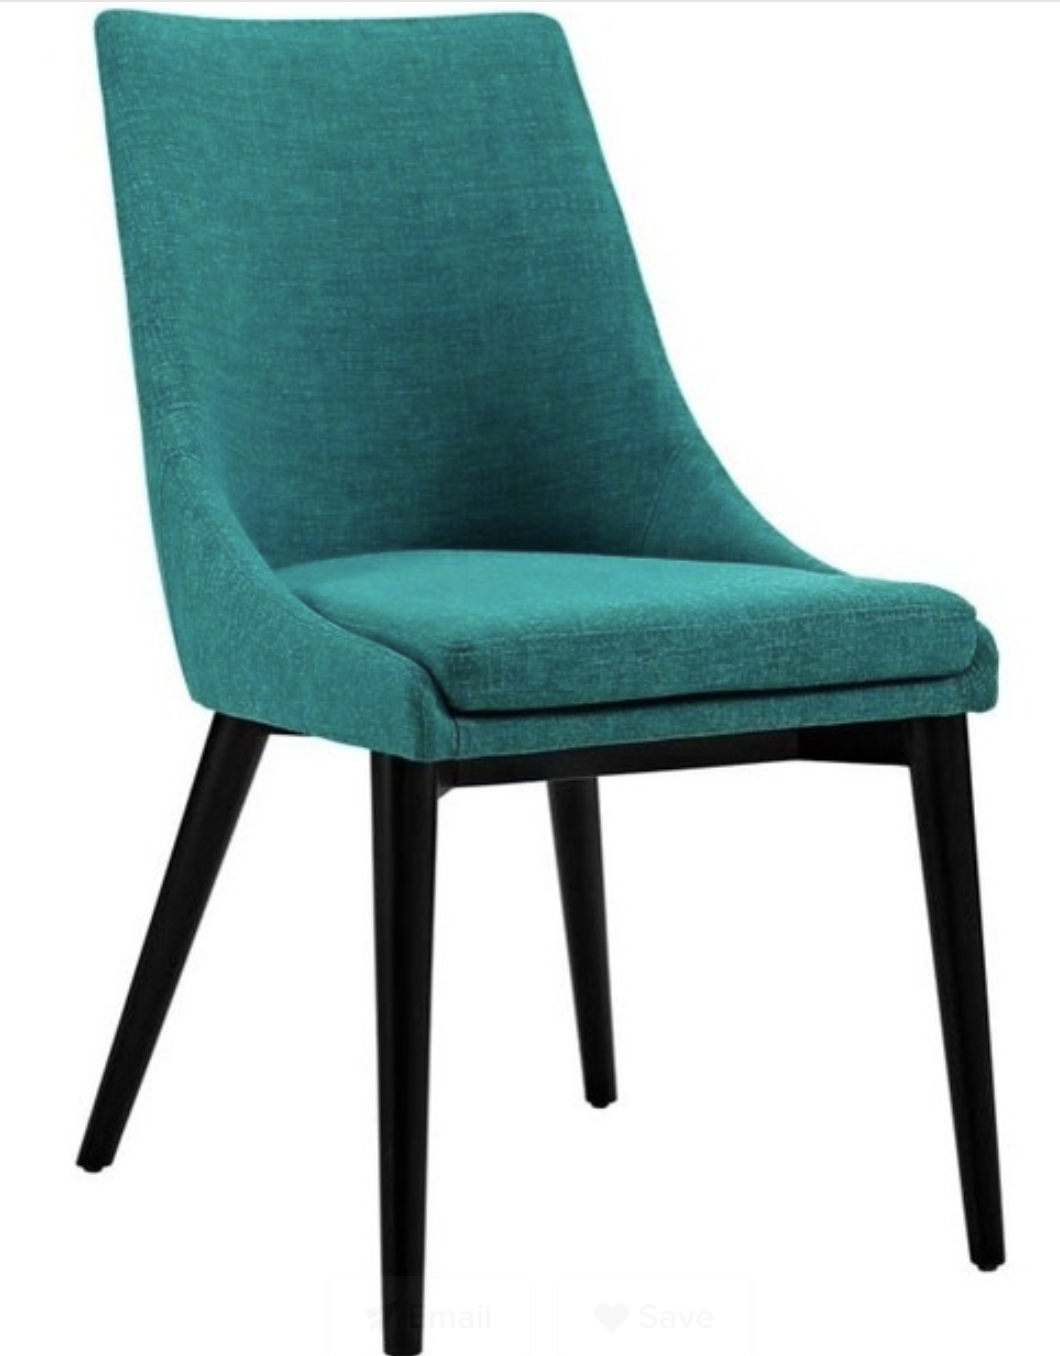 modway-viscount-fabric-dining-chair